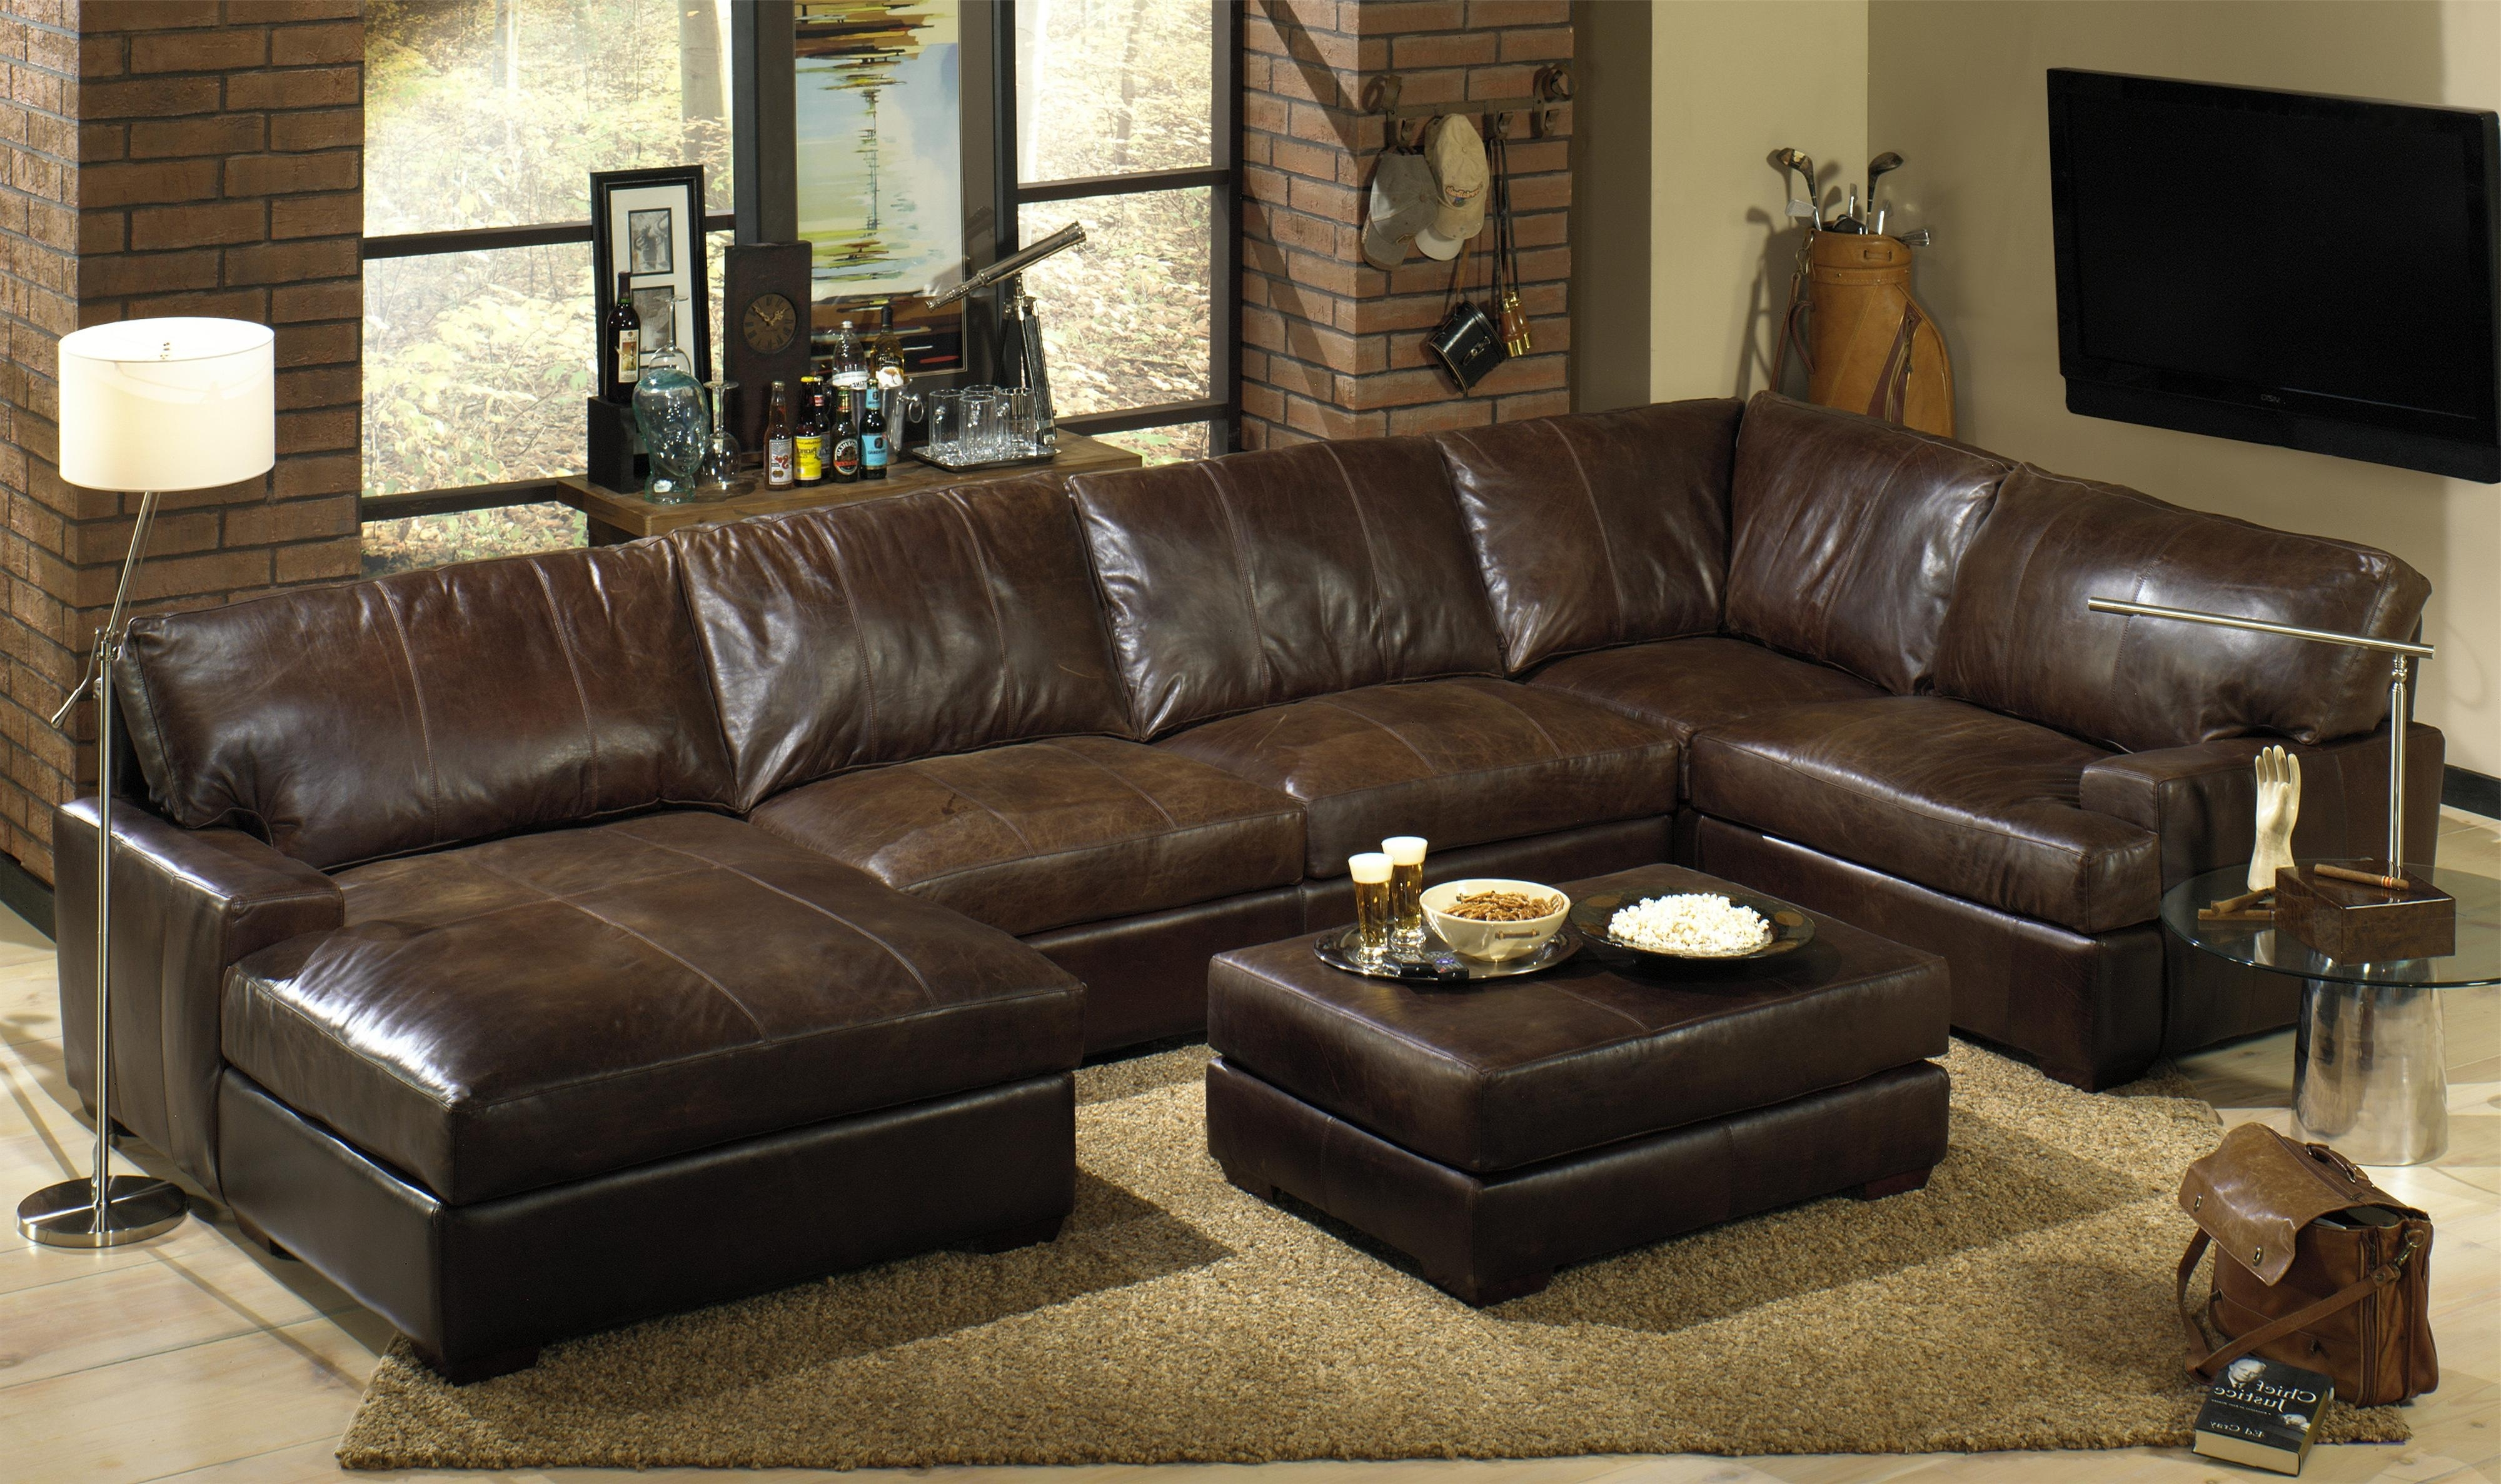 Best And Newest Leather Sectional Sofas Be Equipped Real Leather Sectional Be Regarding Sectional Sofas With Recliners Leather (View 17 of 20)